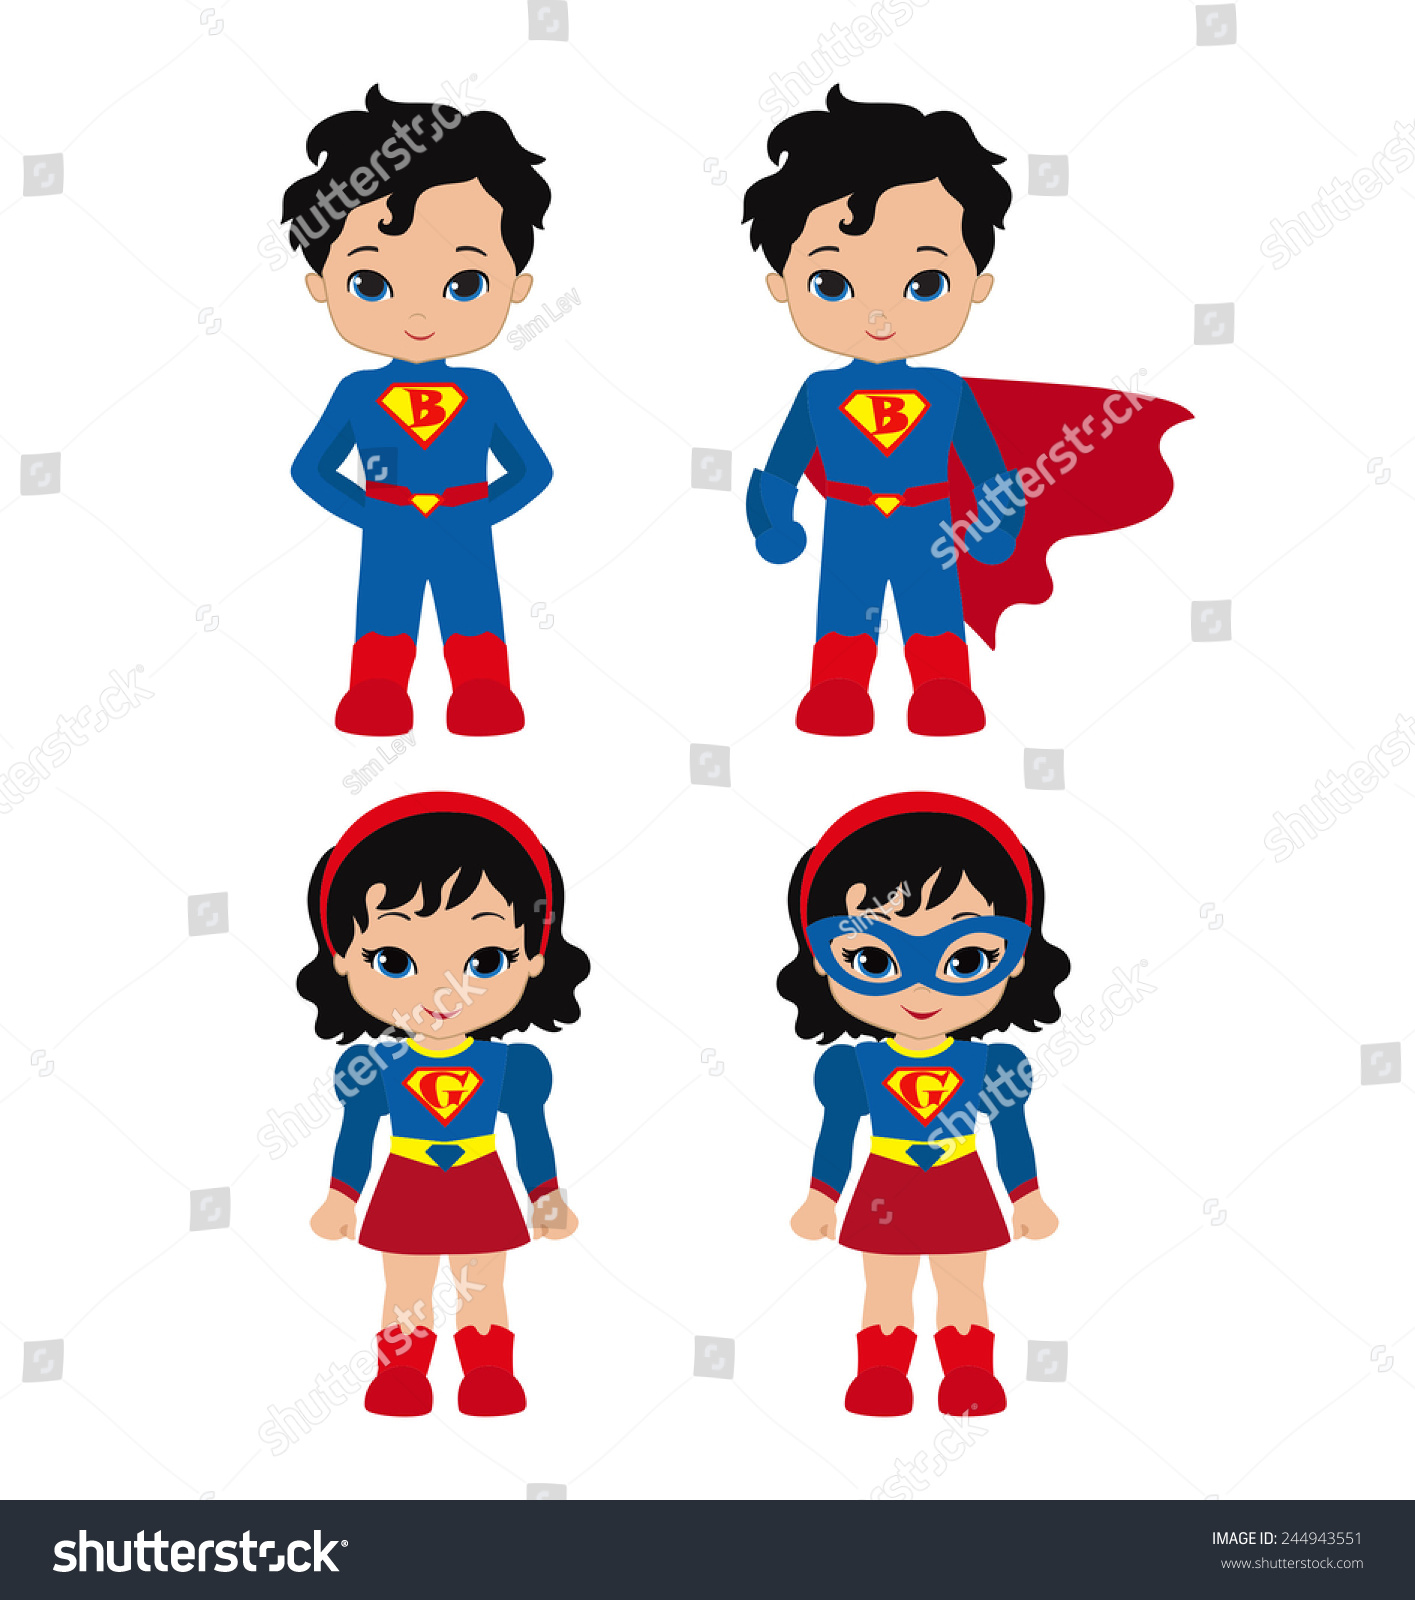 Superhero Art For Little Boys: Cute Superhero Girl Boy Vector Clip Stock Vector 244943551